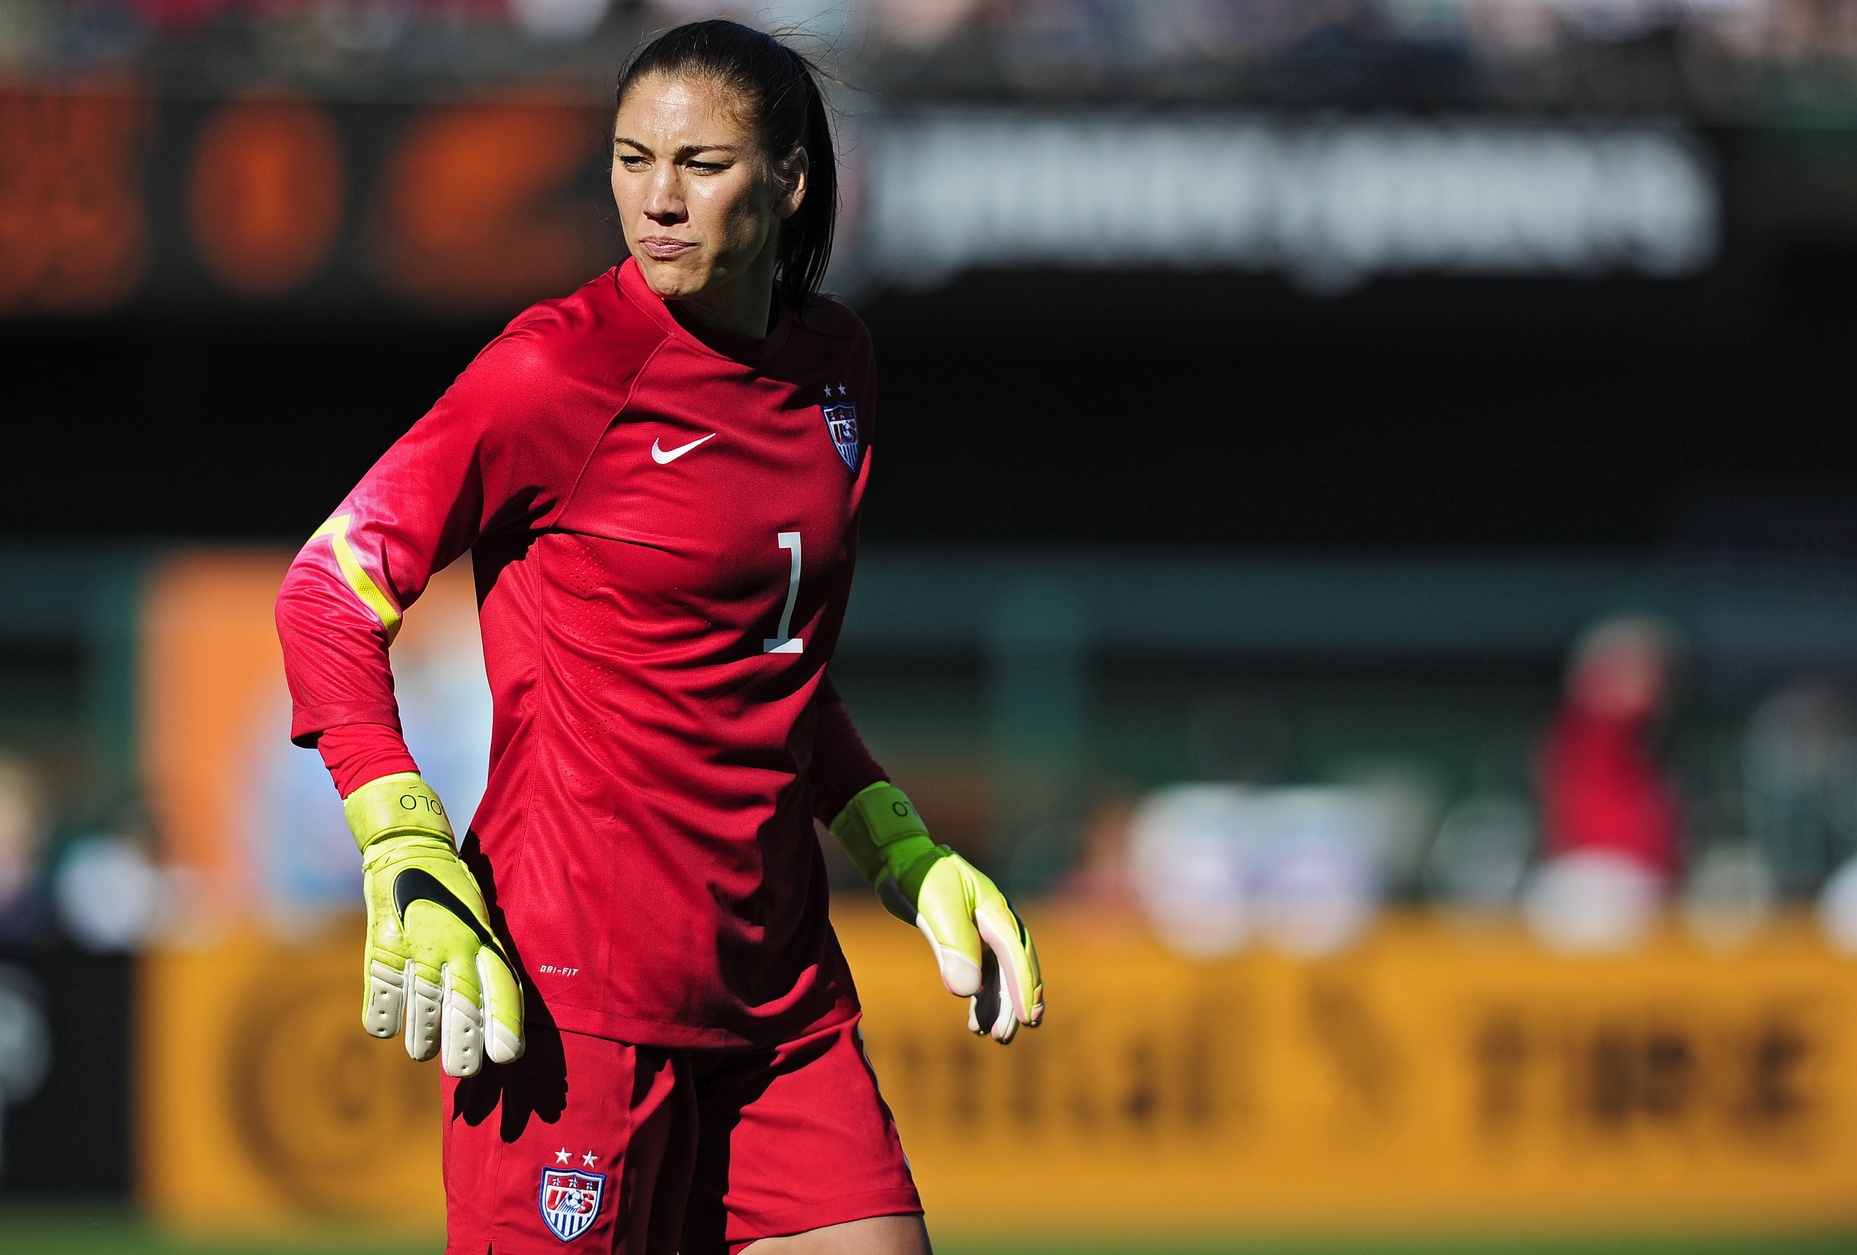 The inconvenient truths of Hope Solo and other troubled figures; By Steve Davis